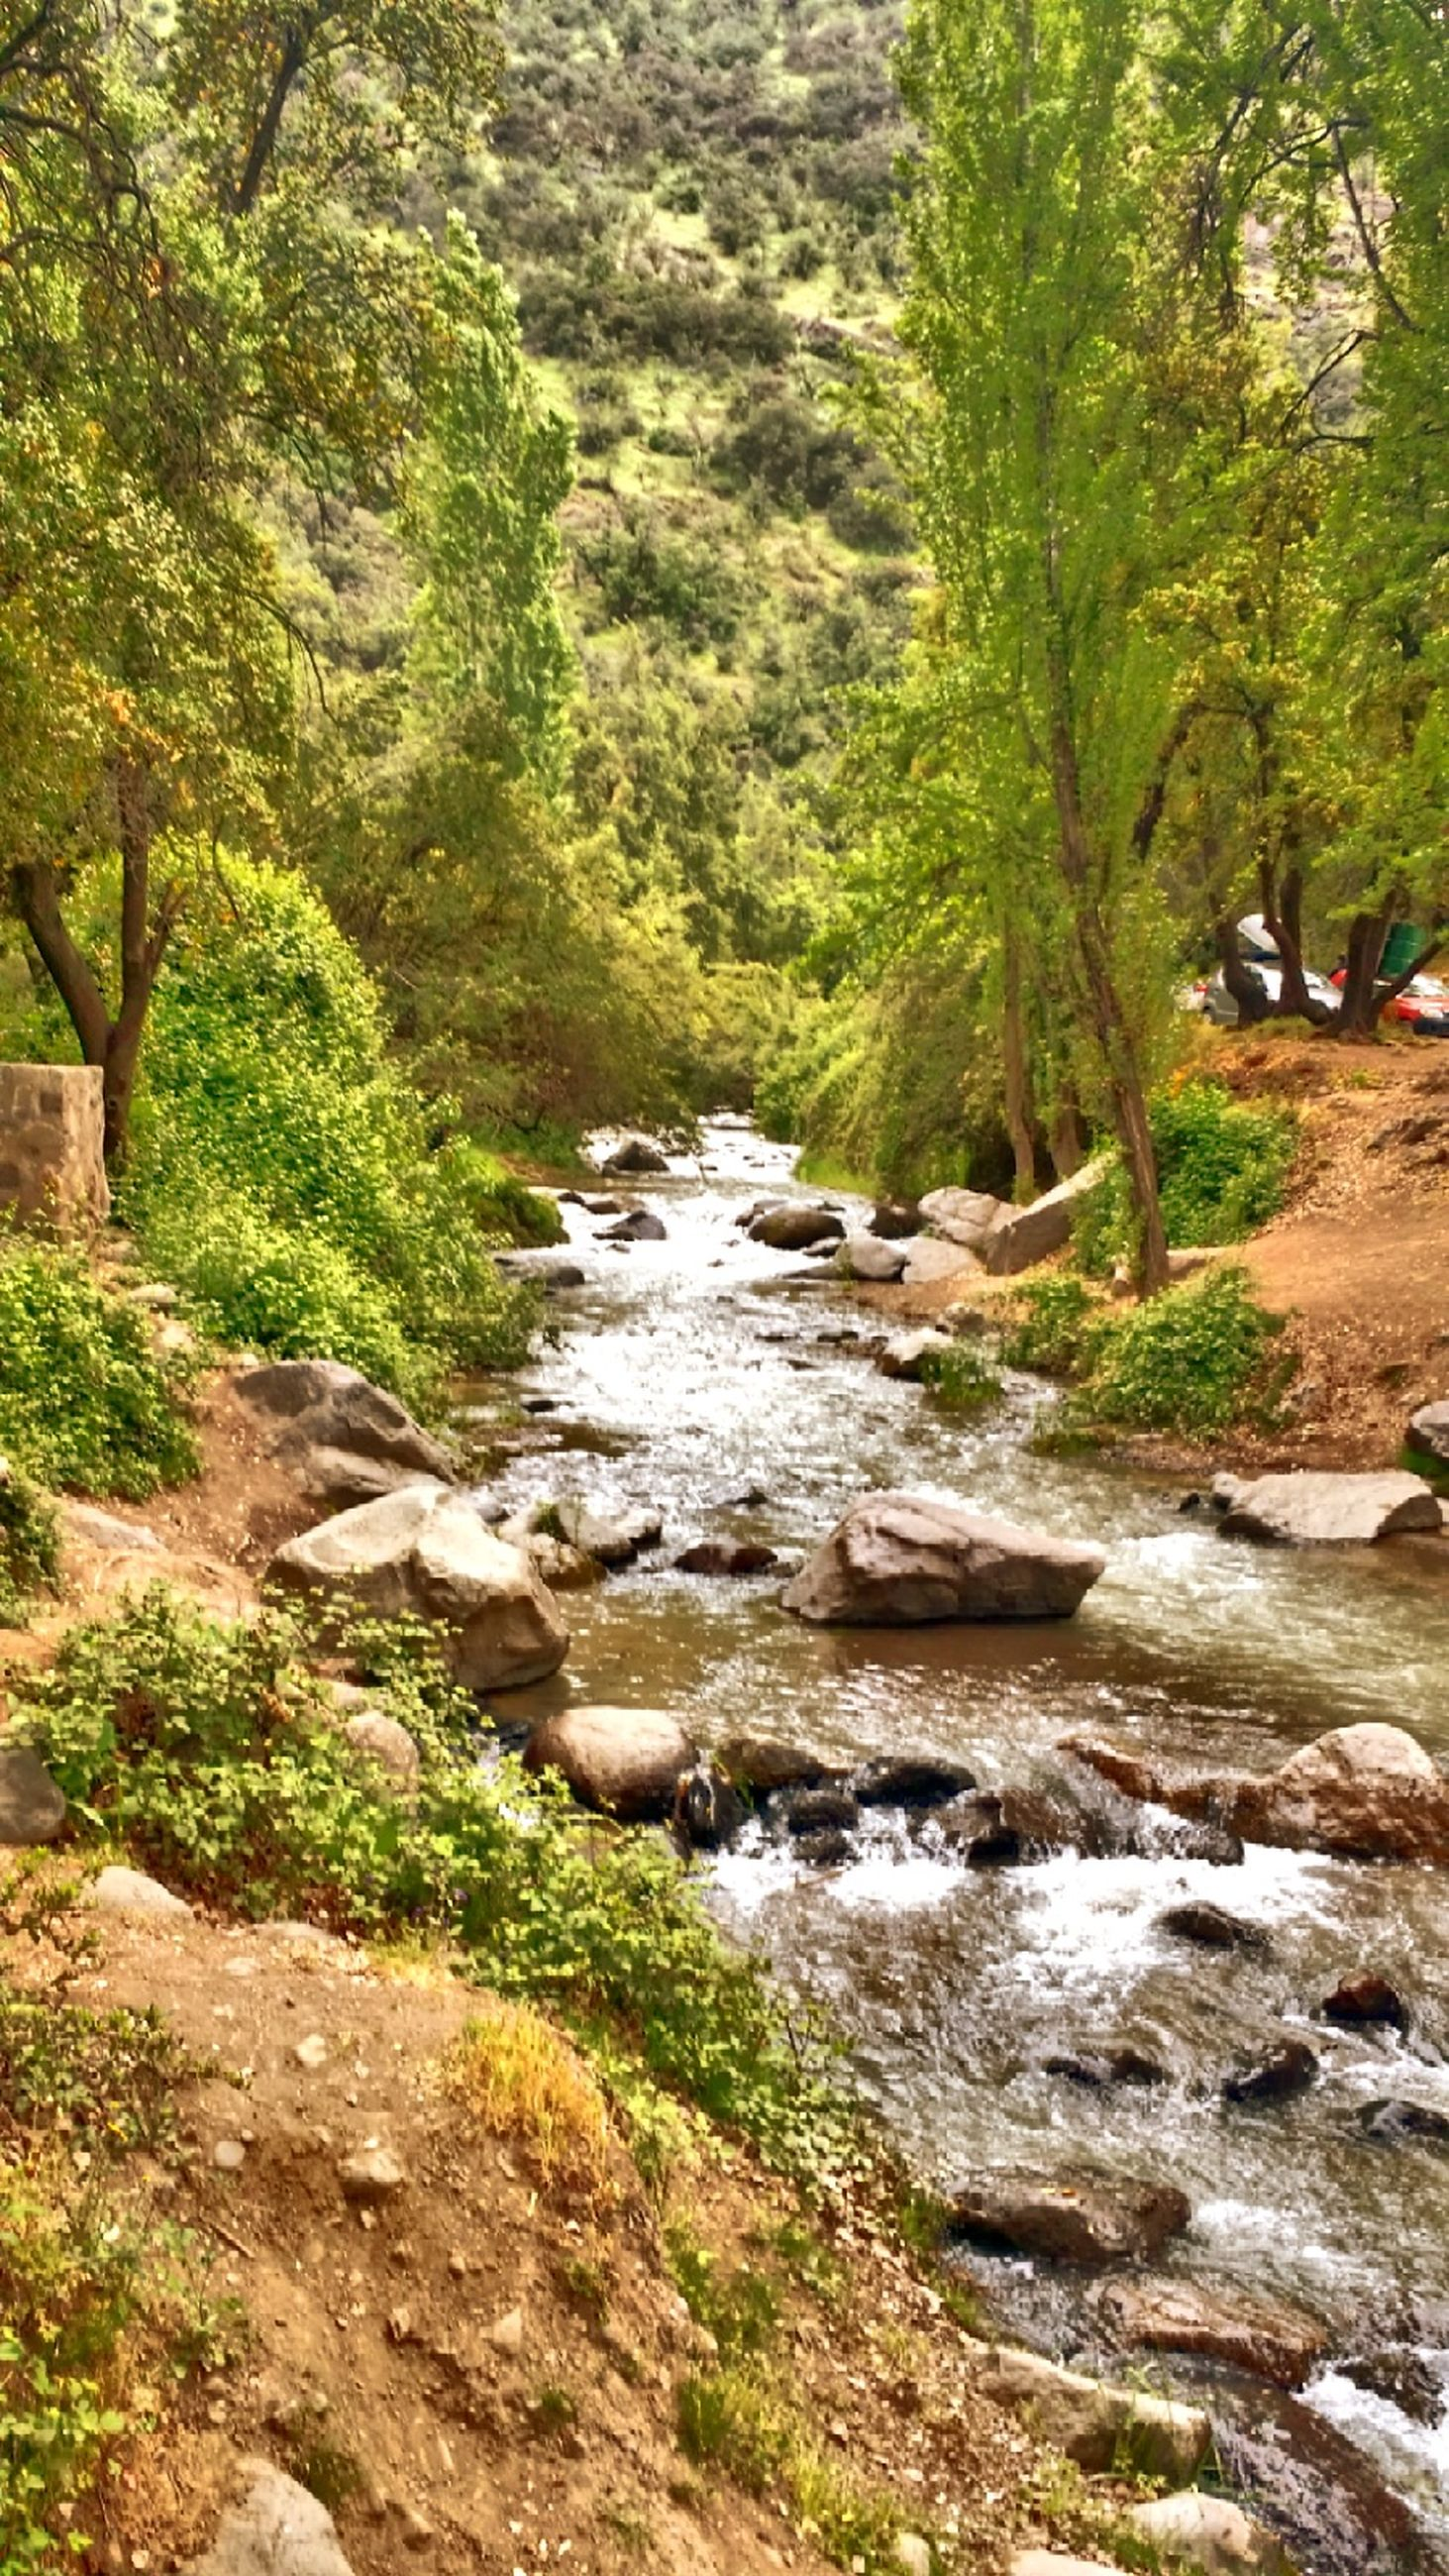 stream, water, tree, flowing water, flowing, forest, scenics, rock - object, beauty in nature, nature, tranquility, tranquil scene, river, motion, growth, green color, waterfall, non-urban scene, plant, landscape